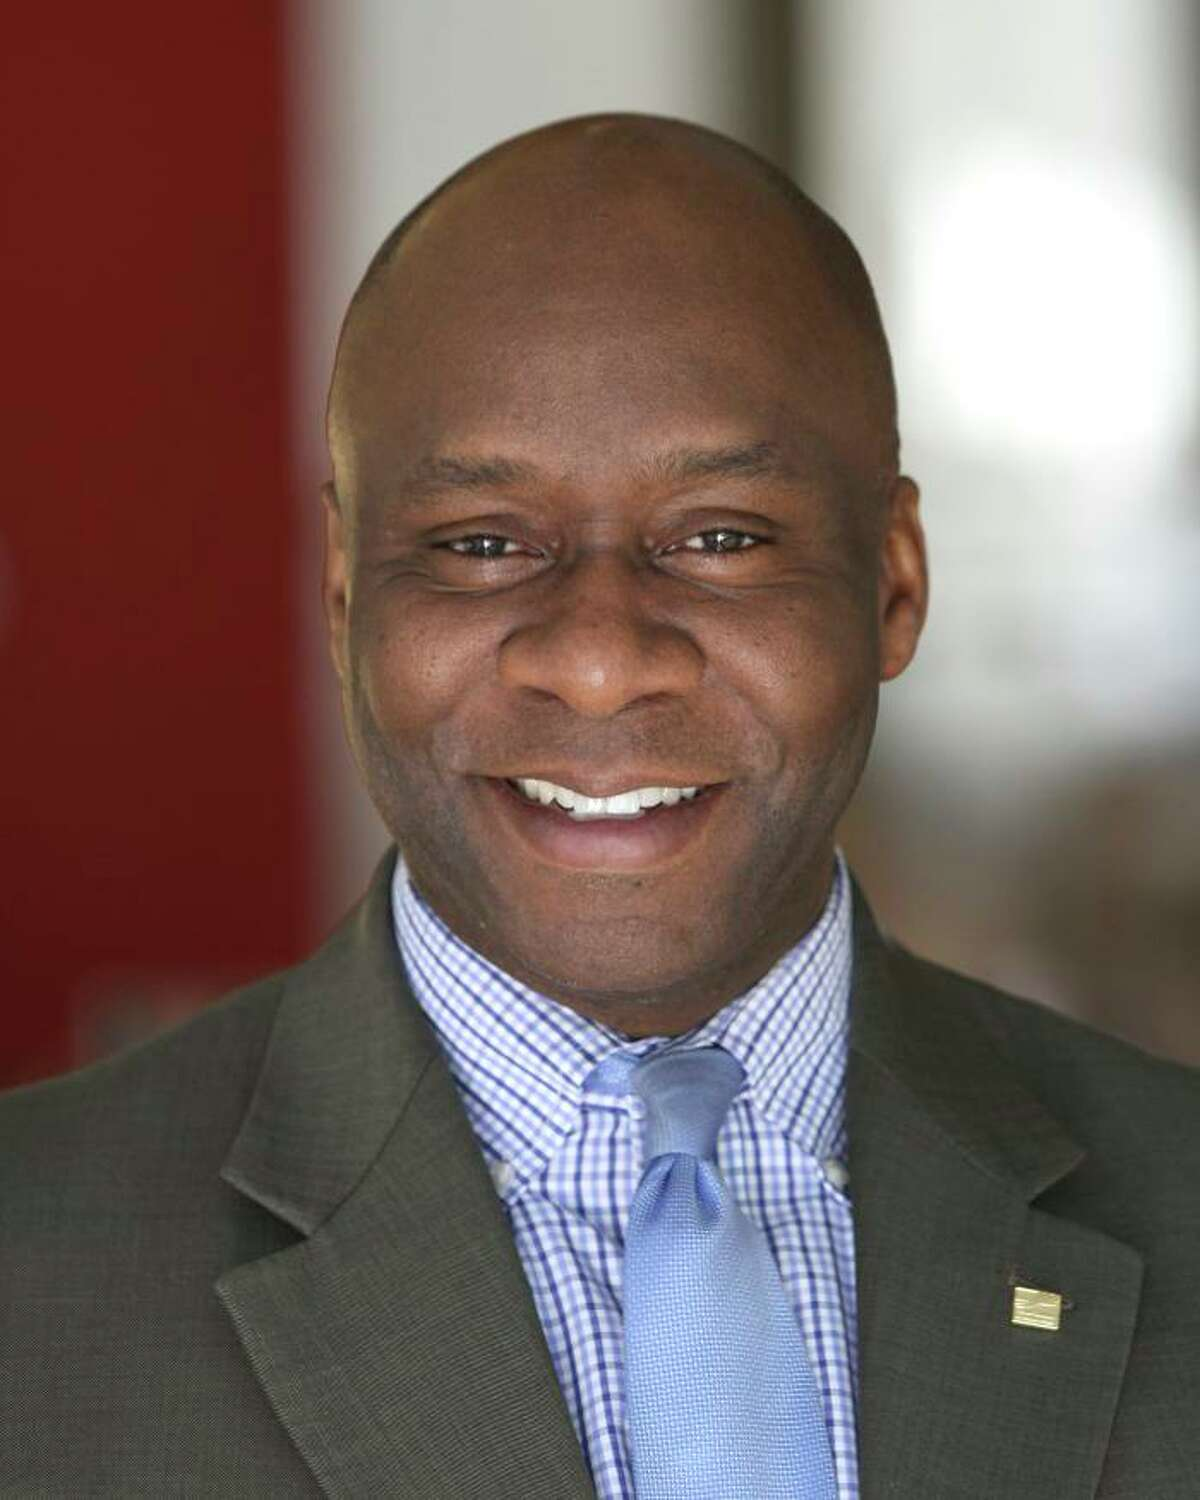 Claude Jacob has been hired as the new director of the San Antonio Metropolitan Health District. He will start July 6.